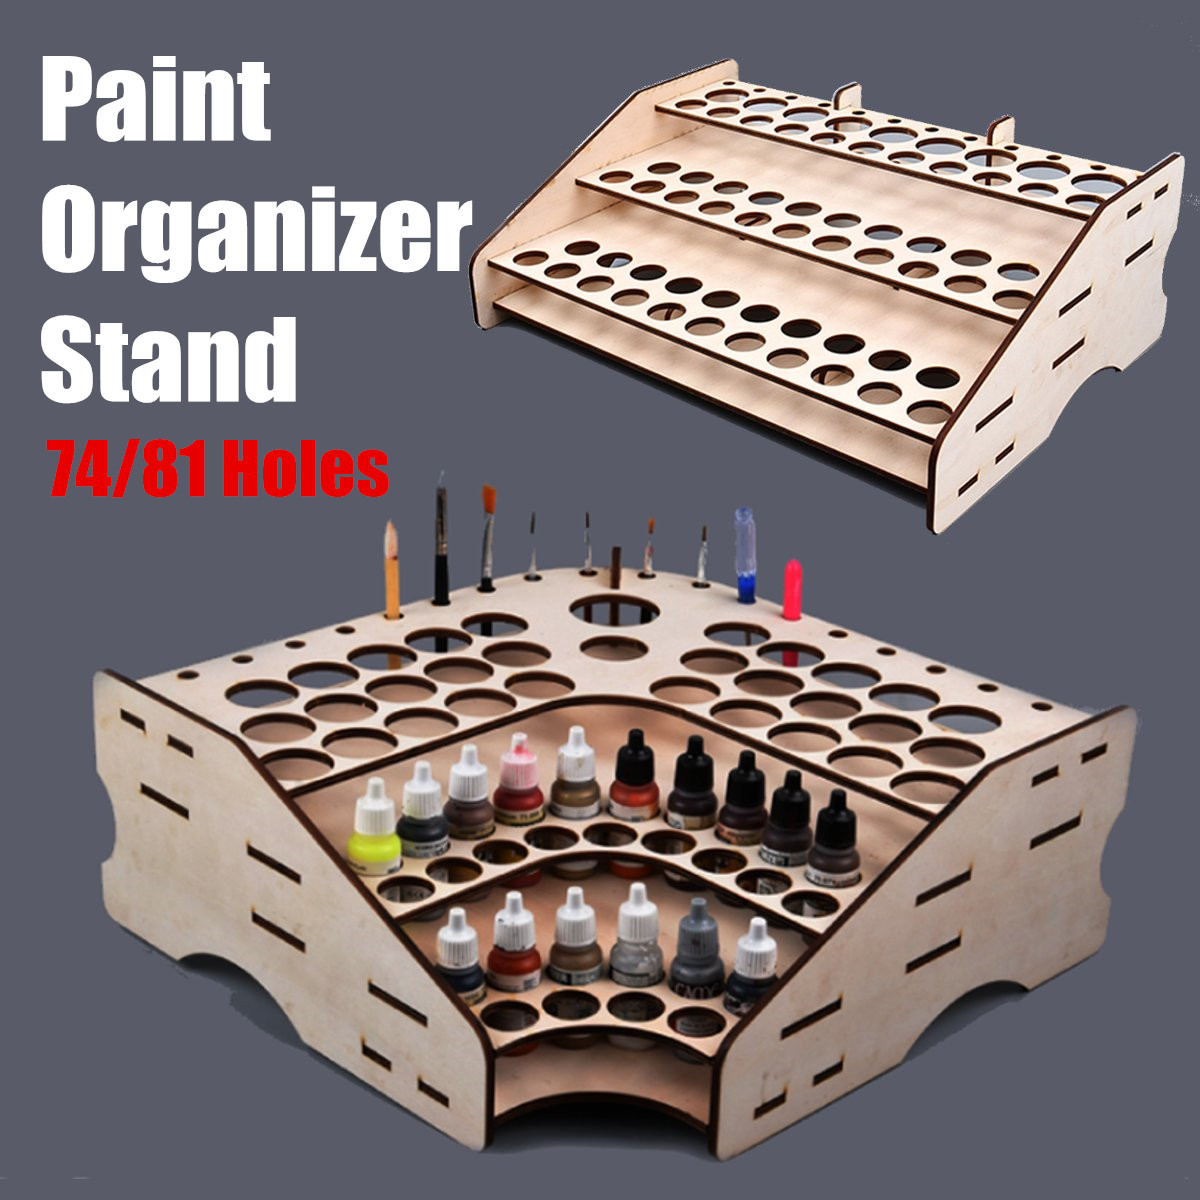 3 Layers Wooden Pigment Bottle Storage Organizer 74/81 Bottles Color Paint Ink Brush Stand Rack Modular Holder Home School